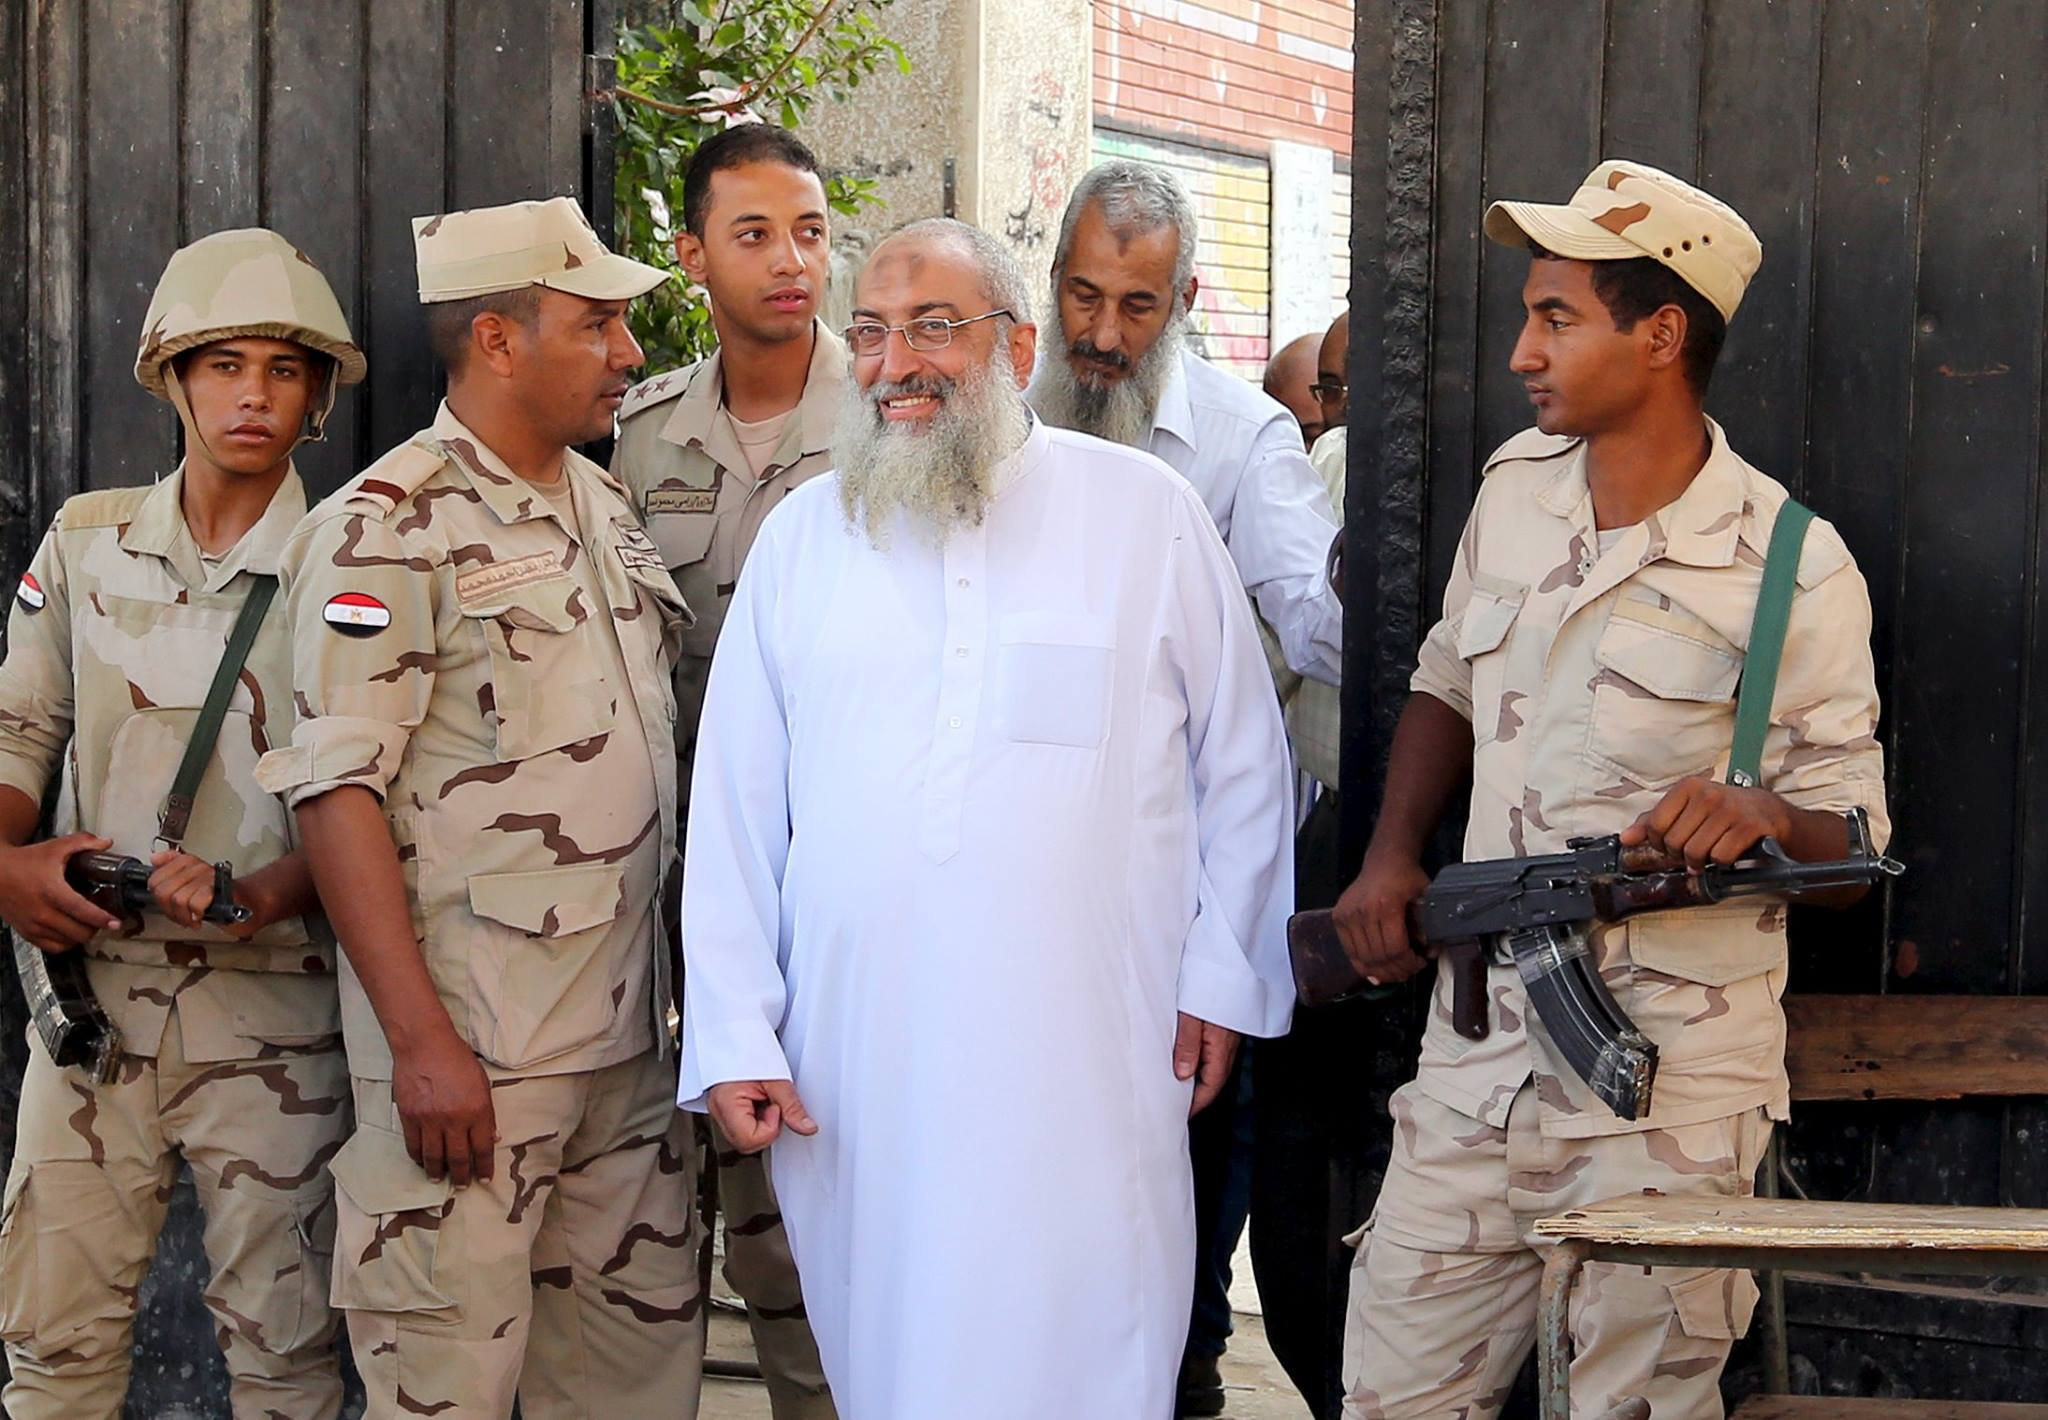 Yasser Borhami, founder of the Salafist Al Nour Party, after casting his ballot [Credit: Reuters]